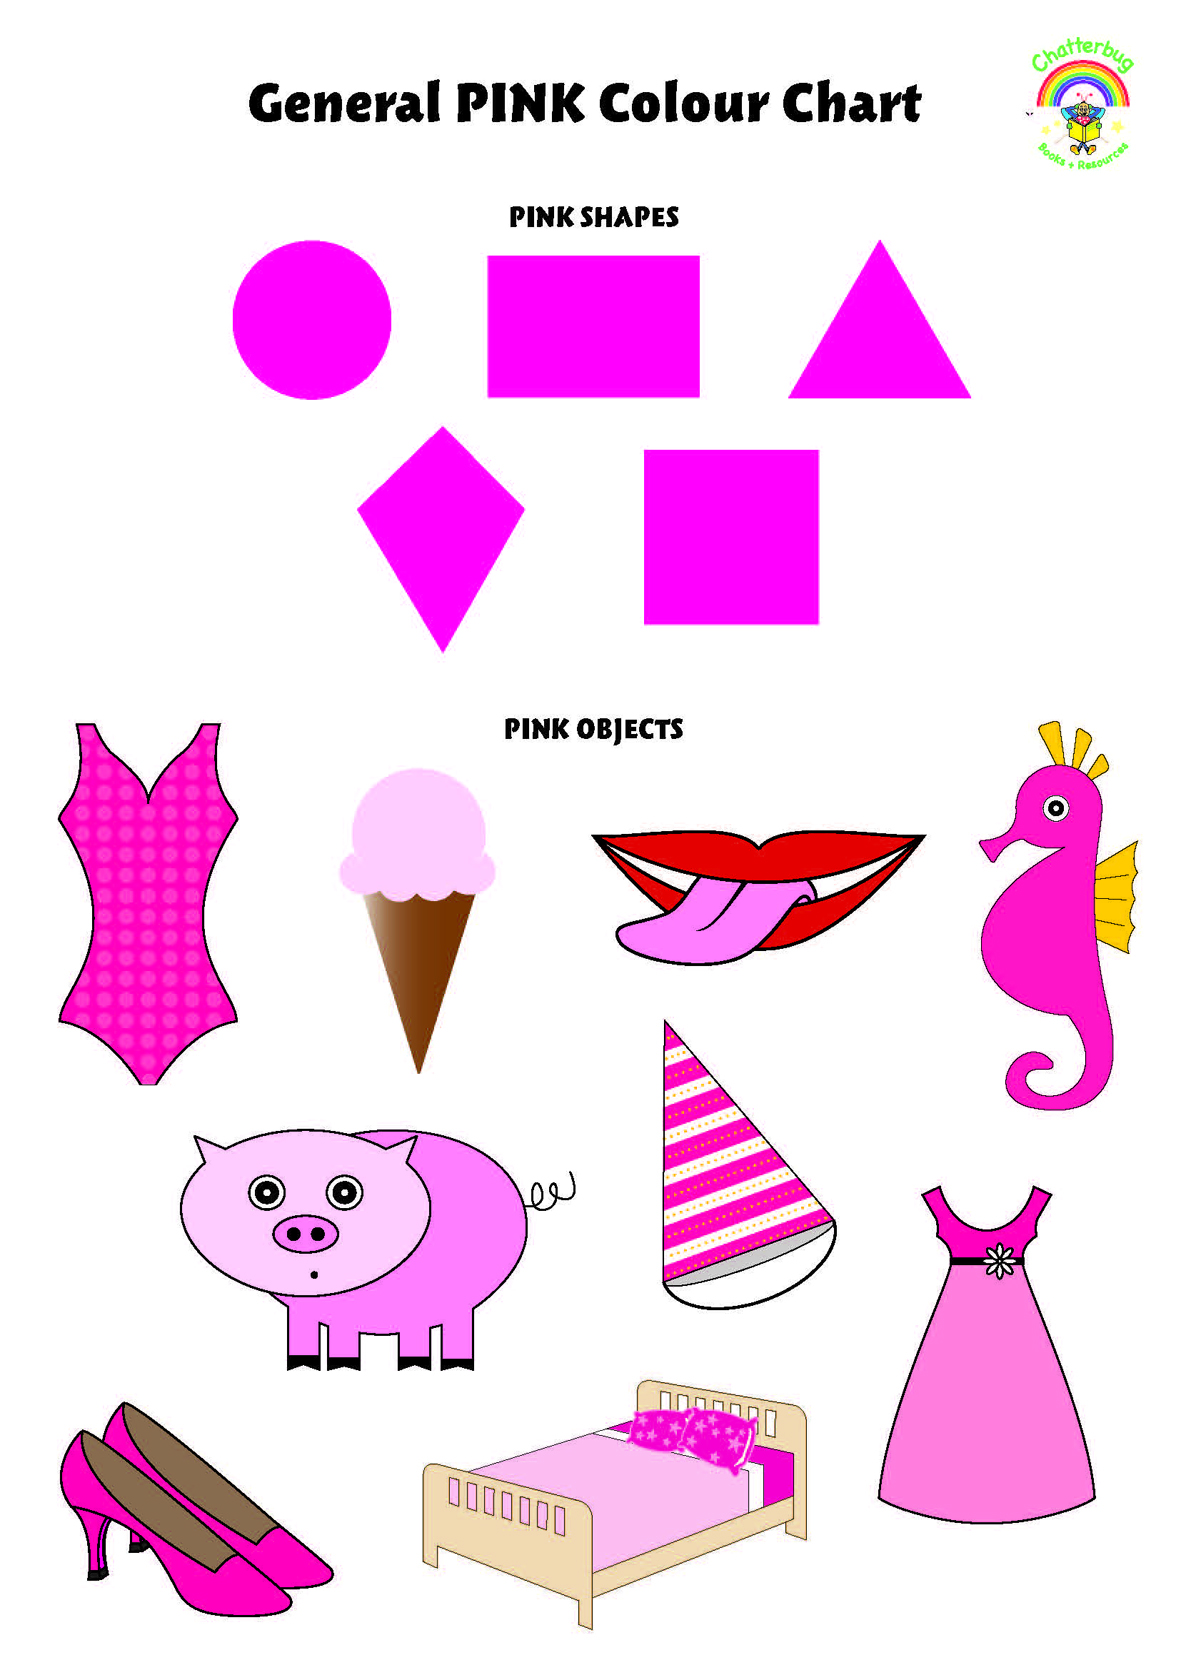 Pink Colour Chart